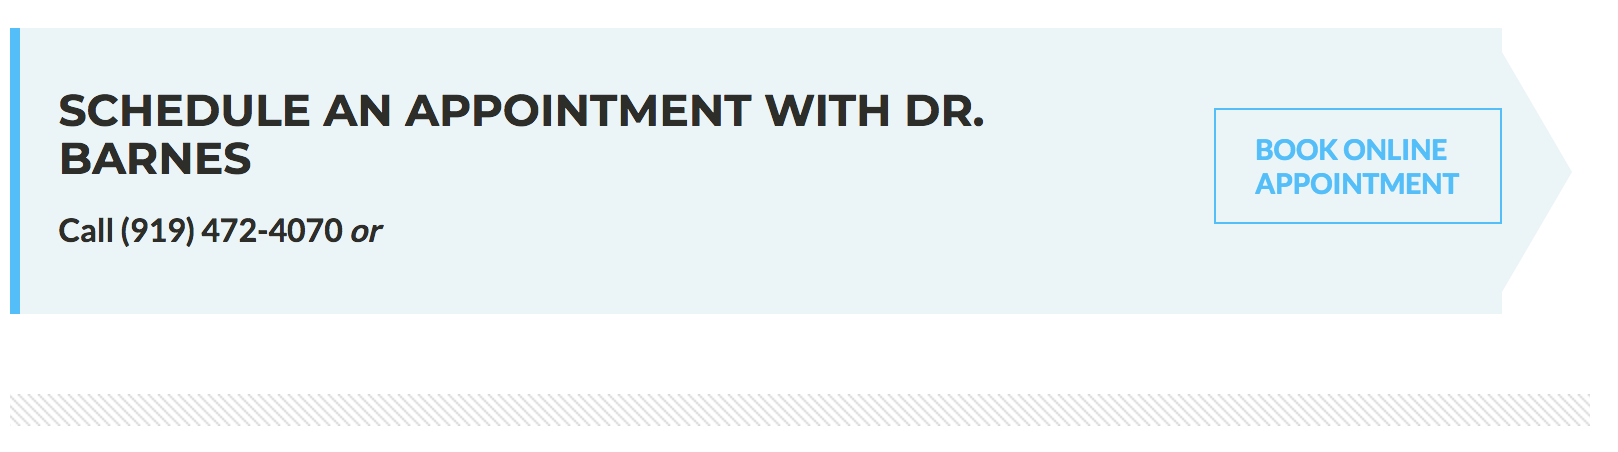 online appointment arrow